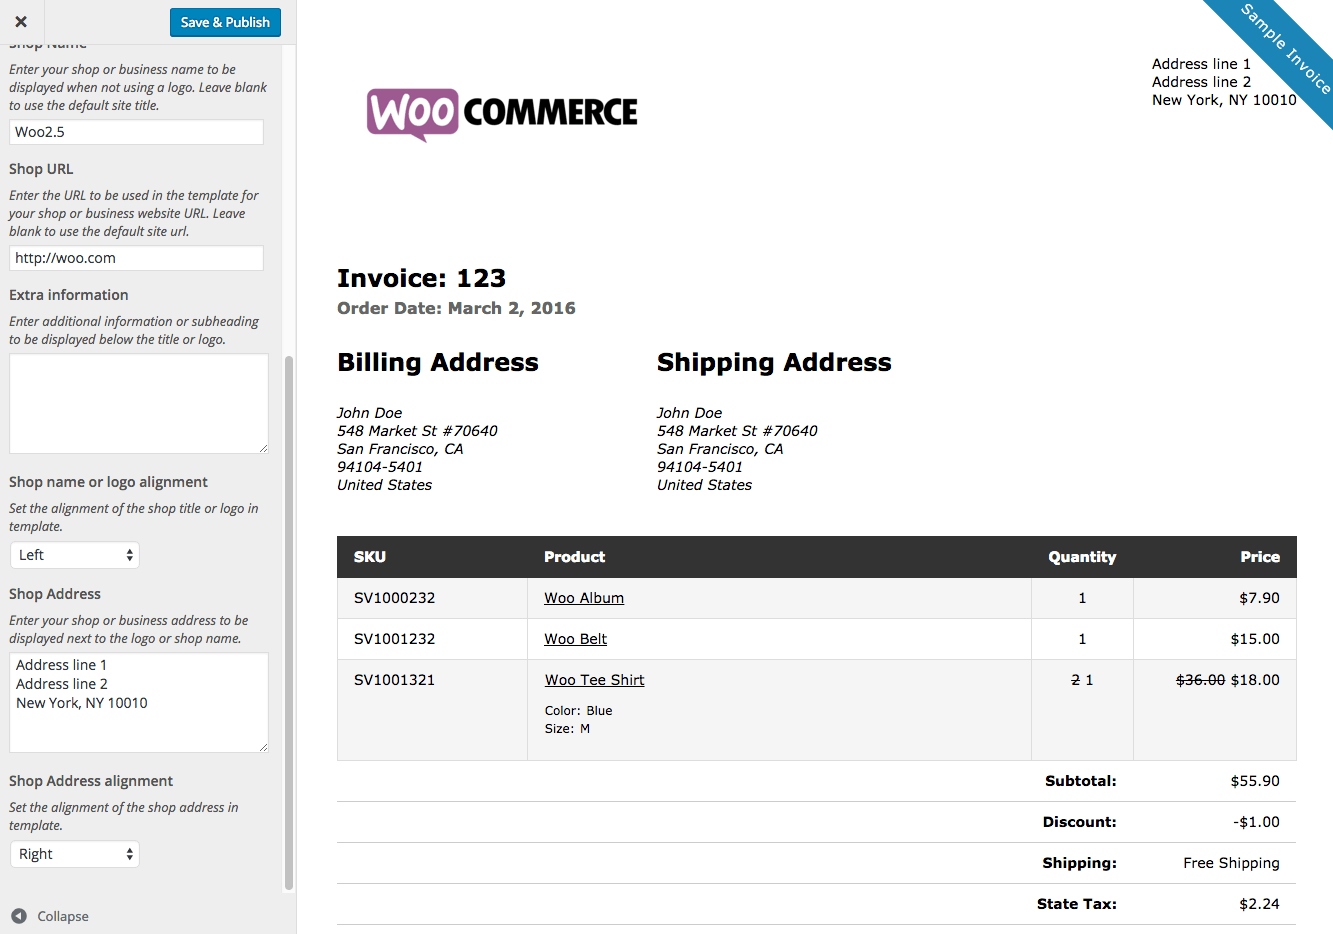 Shopdesignsus  Seductive Print Invoices Amp Packing Lists  Woocommerce With Gorgeous Woocommerce Print Invoices  Packing Lists Customizer With Archaic Dymo Receipt Paper Also Neat Receipts Staples In Addition Template For Rent Receipt And Medical Bill Receipt As Well As App Receipt Additionally Using Evernote For Receipts From Woocommercecom With Shopdesignsus  Gorgeous Print Invoices Amp Packing Lists  Woocommerce With Archaic Woocommerce Print Invoices  Packing Lists Customizer And Seductive Dymo Receipt Paper Also Neat Receipts Staples In Addition Template For Rent Receipt From Woocommercecom